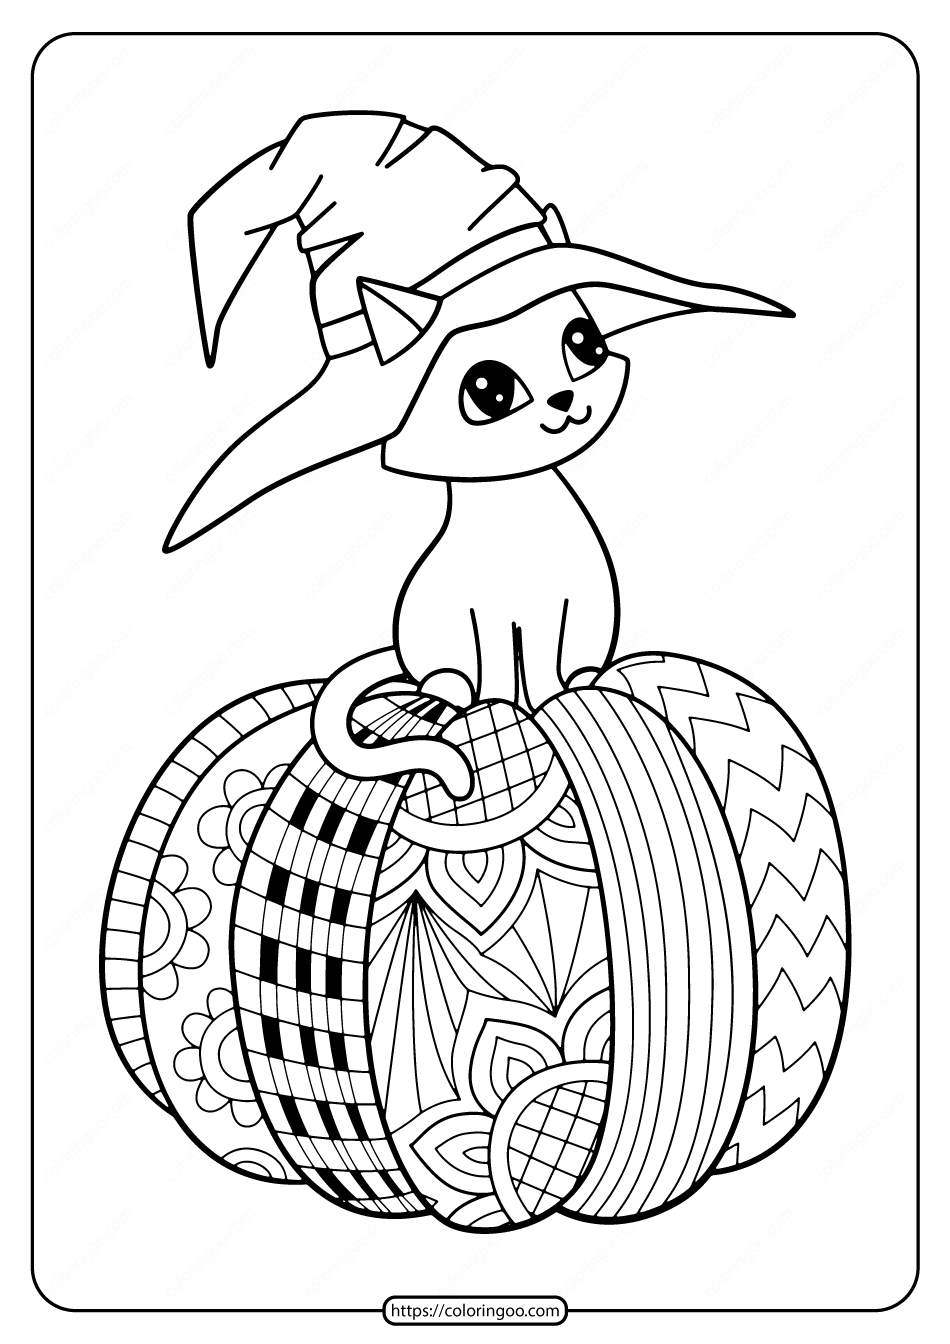 halloween cat coloring pages halloween witch hat cat on pumpkin coloring pages pages coloring halloween cat